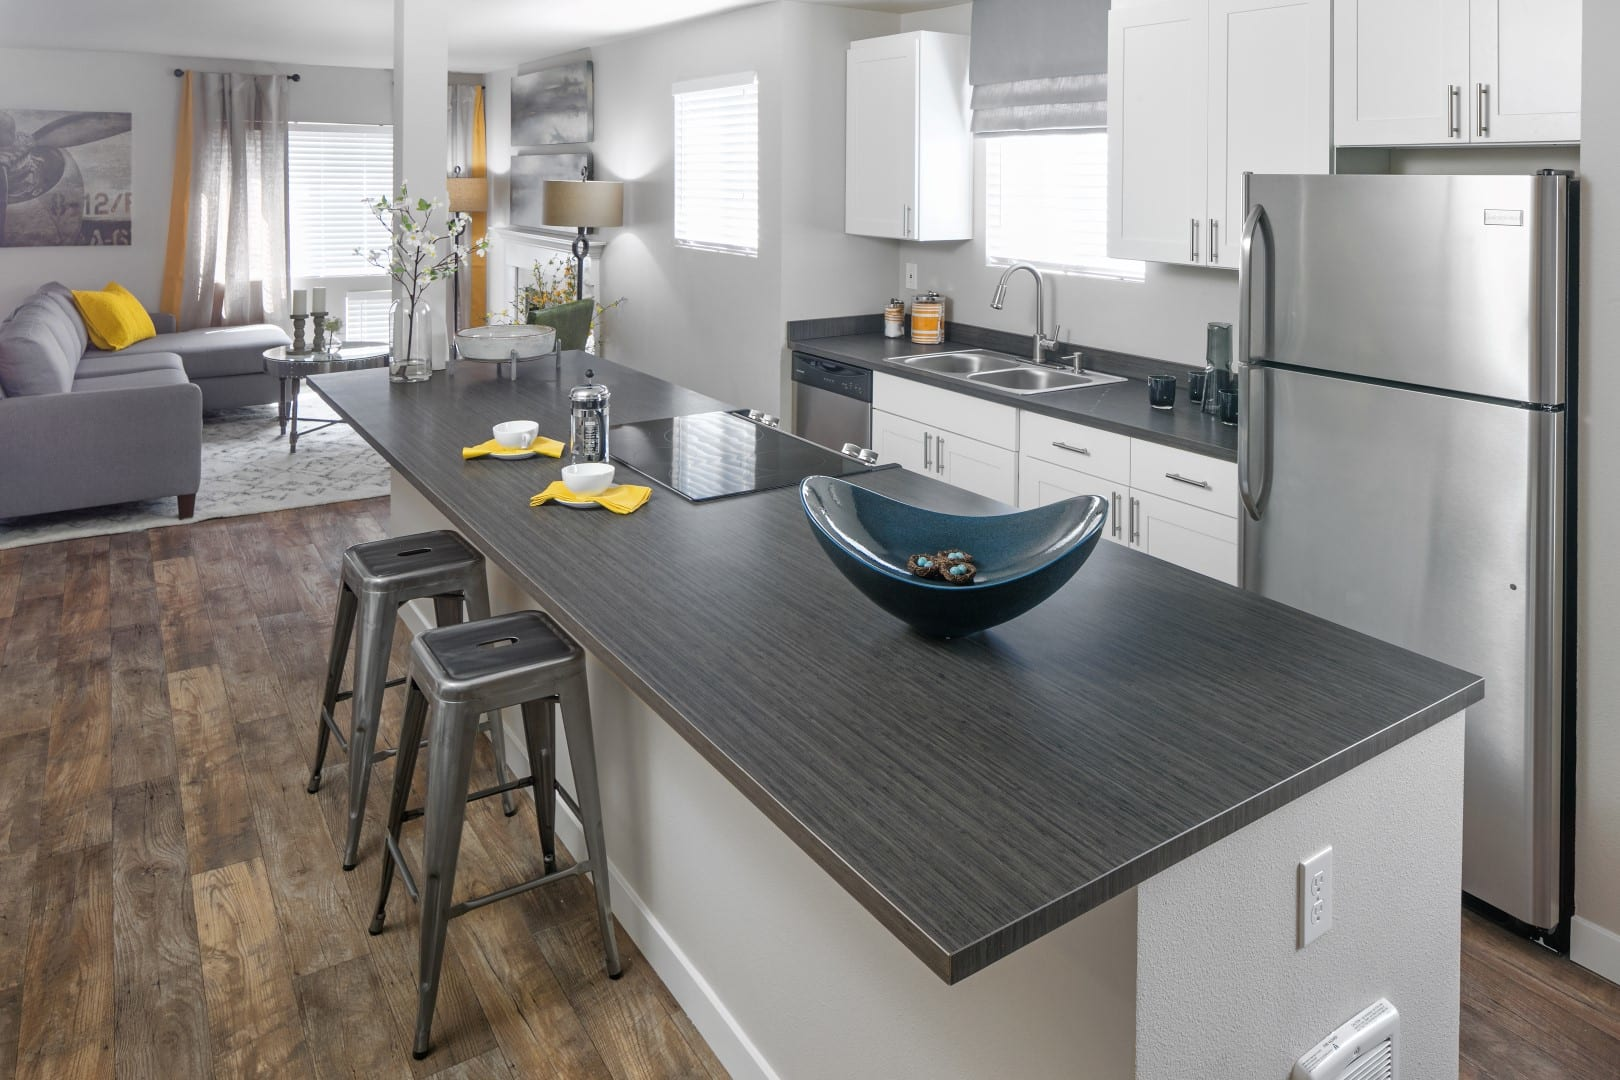 Townhome rental kitchen for The Carriages in Renton, WA